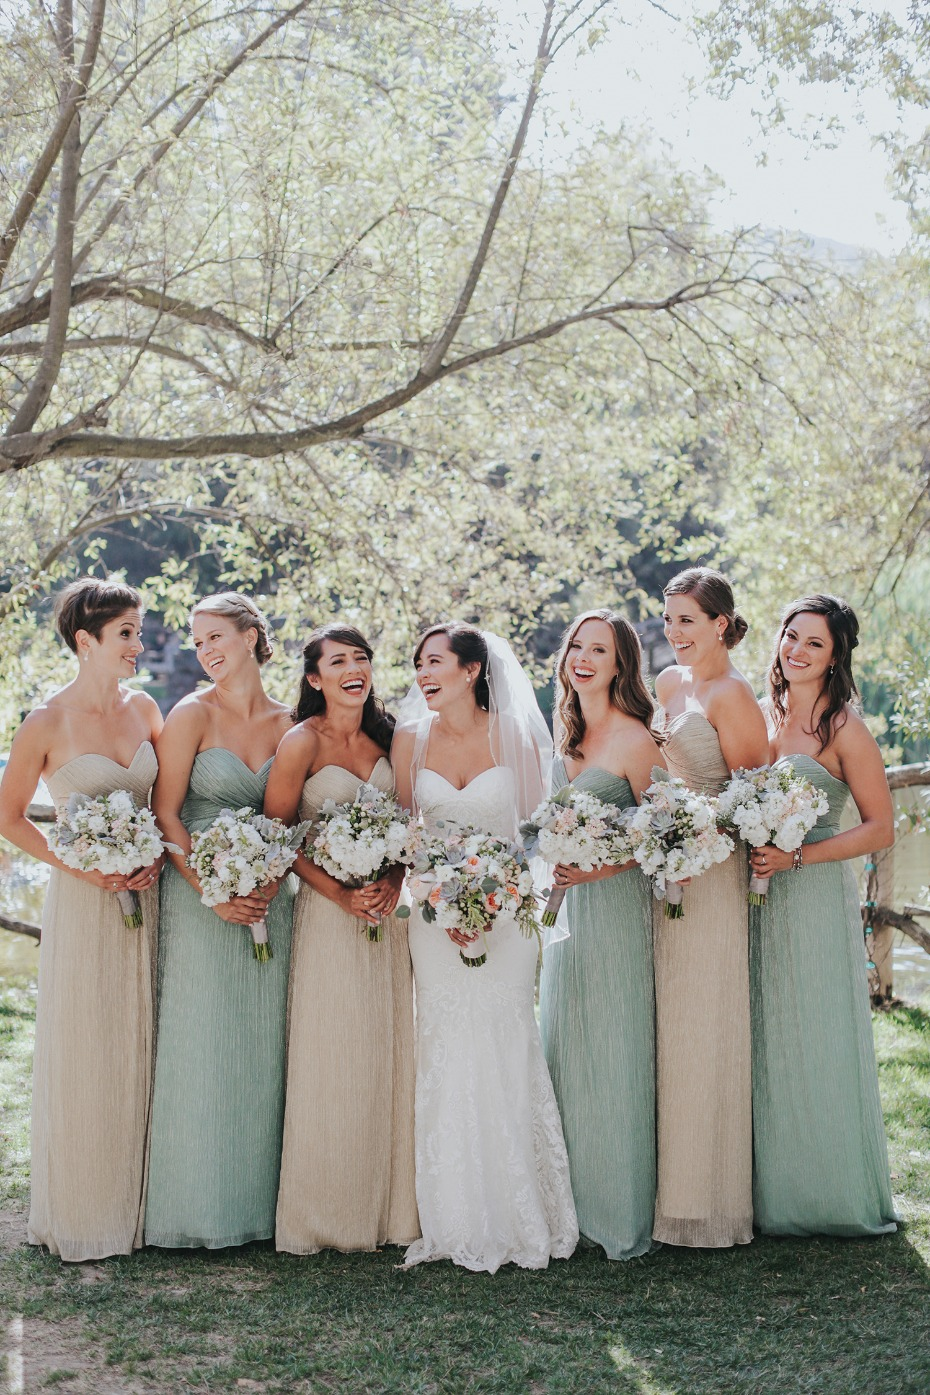 bridesmaids in champagne and mint dresses